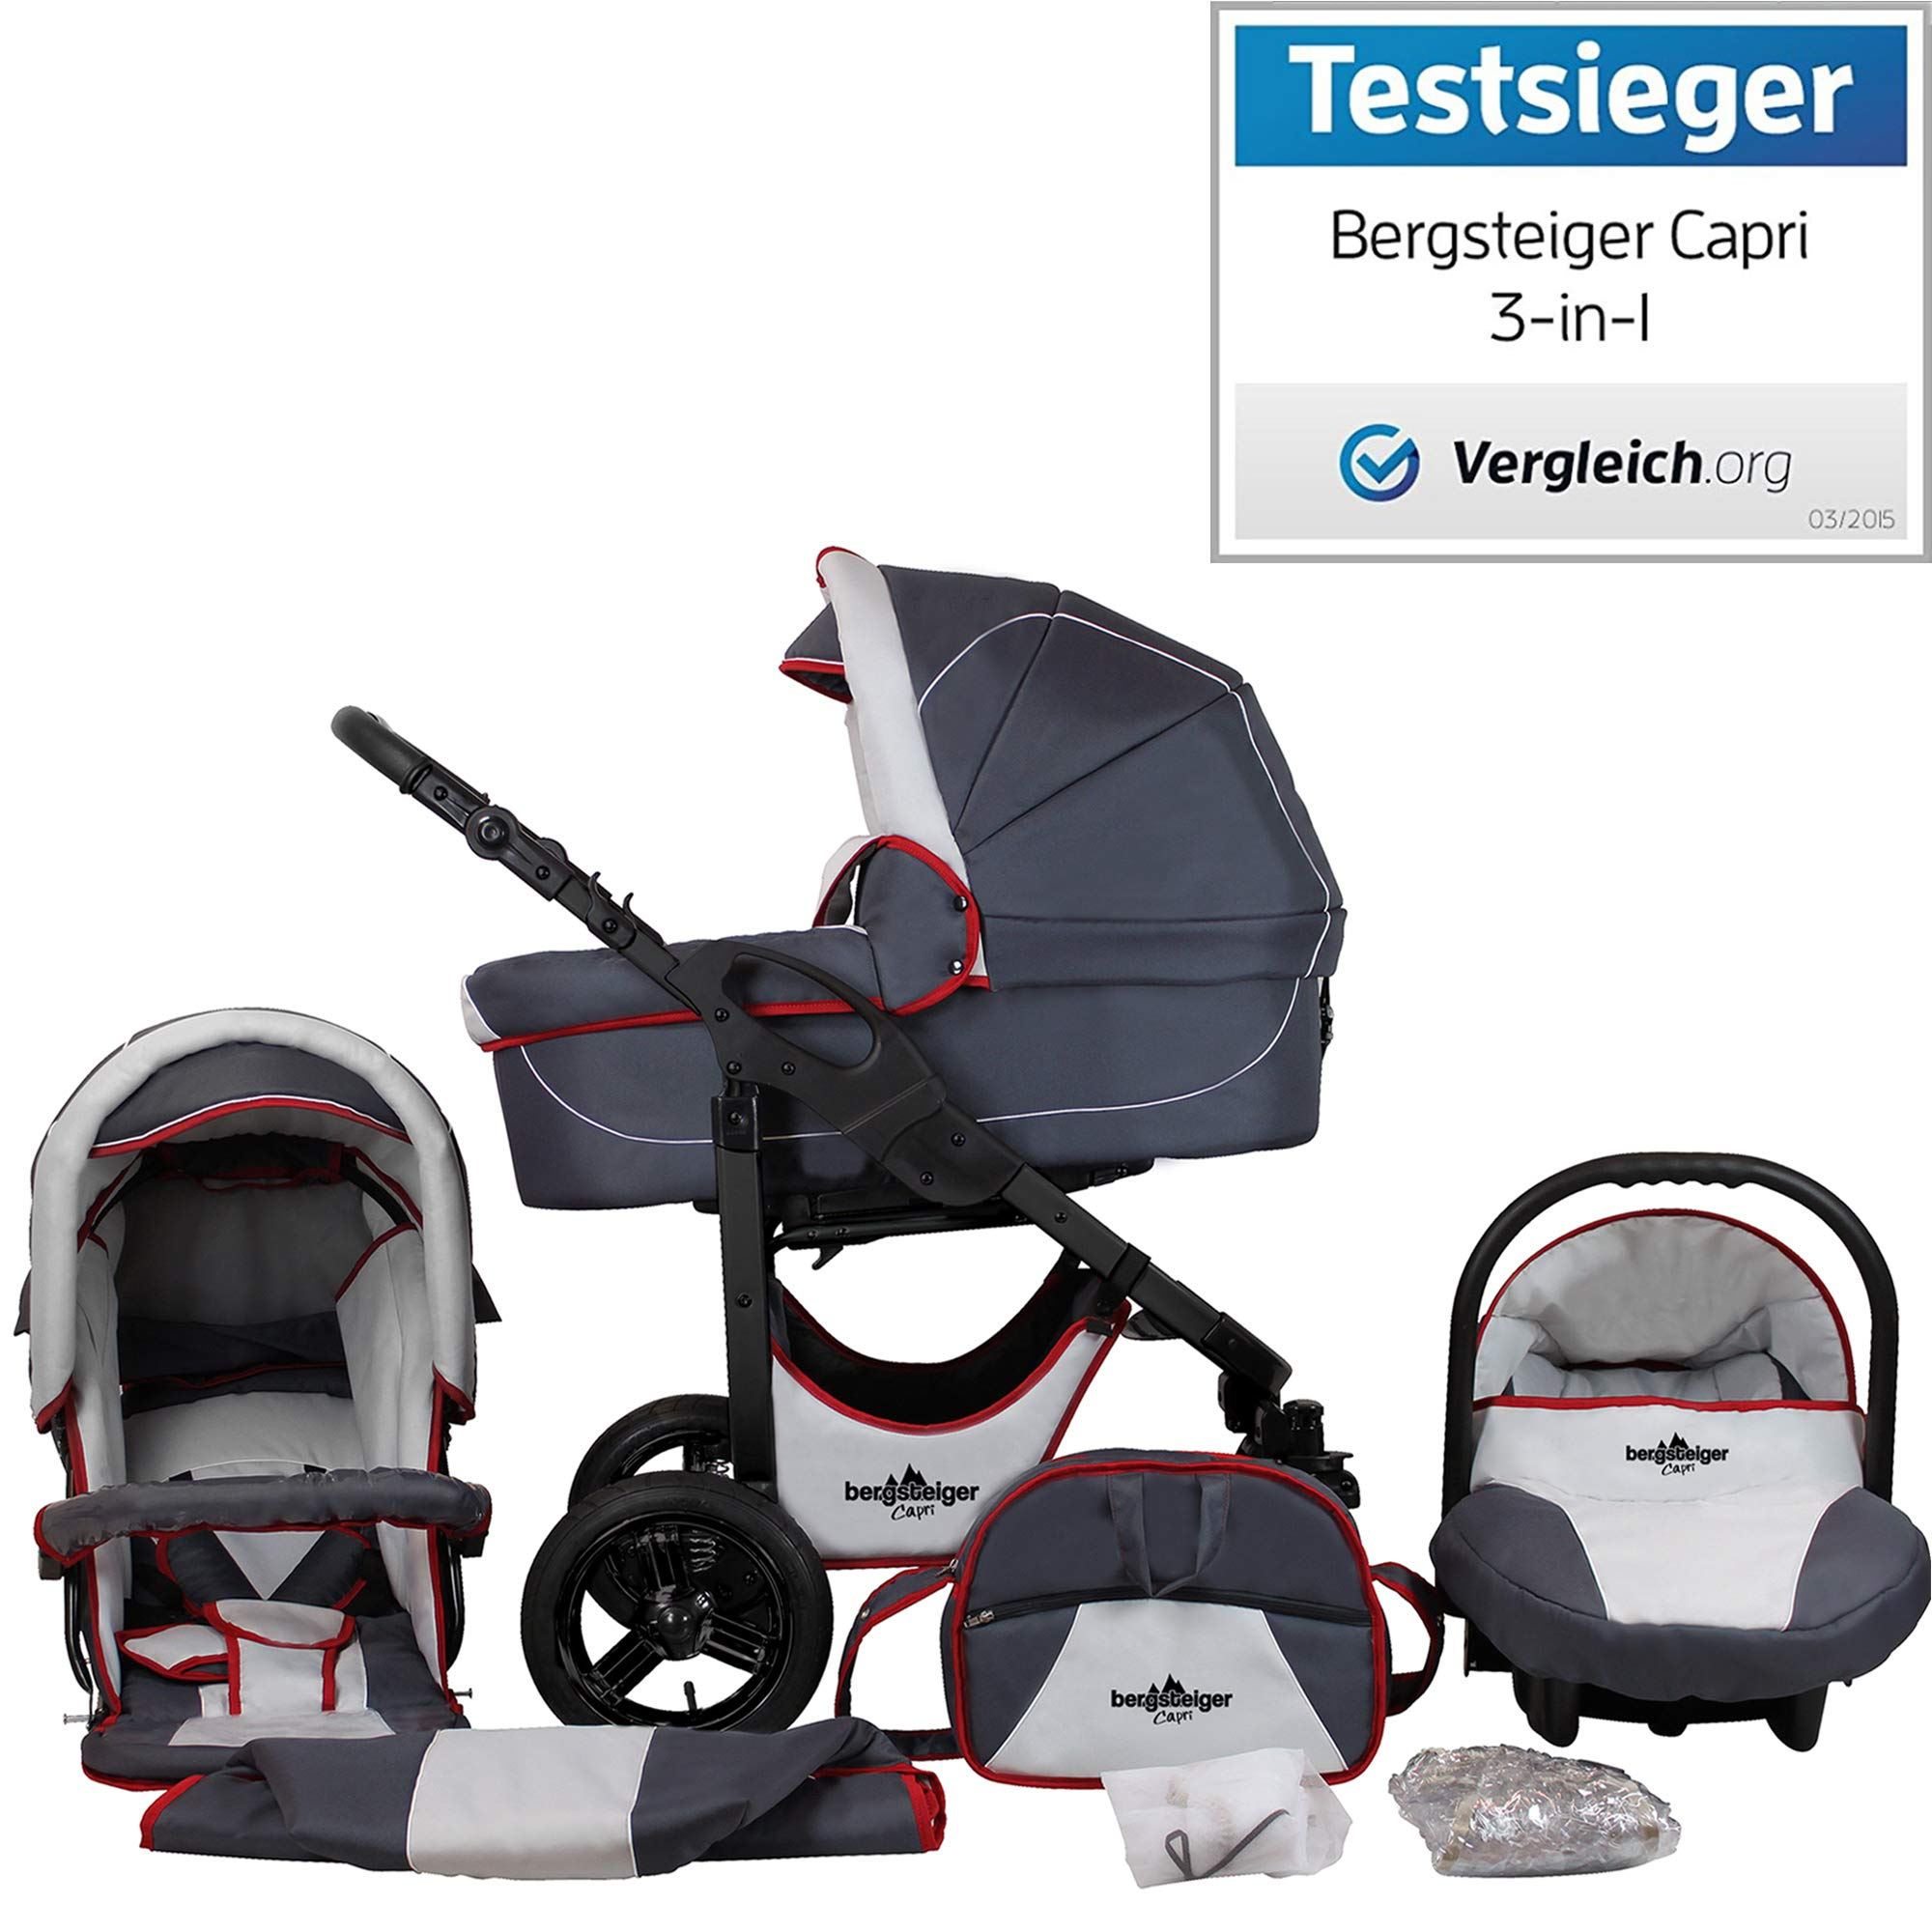 Bergsteiger Capri Grey & Red stripes | Gestell: anthrazit Kinderwagen 3 in 1 Kombikinderwagen Megaset 10 teilig inkl. Babyschale, Babywanne, Sportwagen und Zubehör